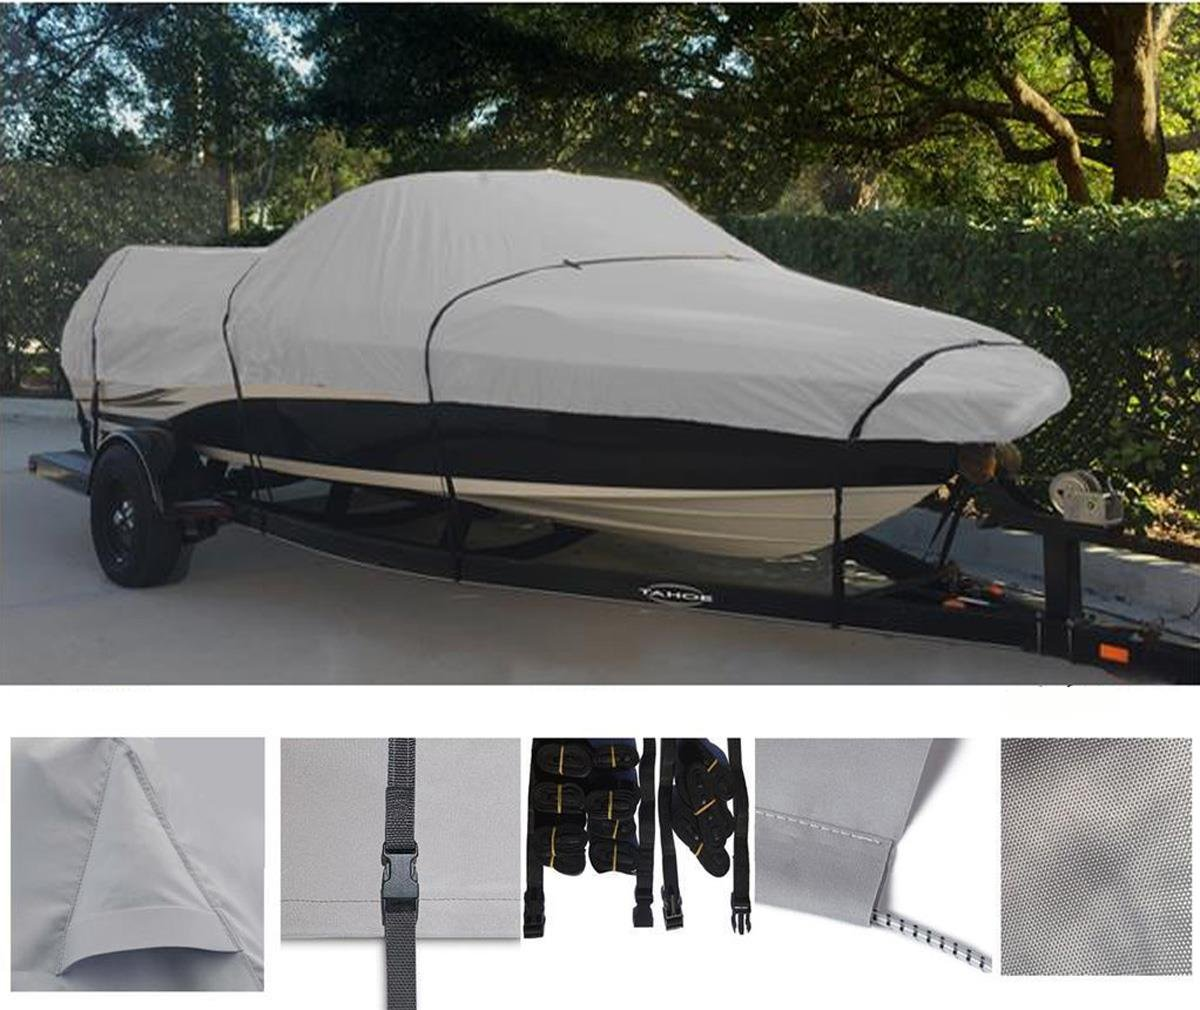 GREY, STORAGE, TRAVEL, MOORING BOAT COVER FOR Four Winns Boats HORIZON 190 H190 2002 2003 2004 2005 2006 2007 by SBU